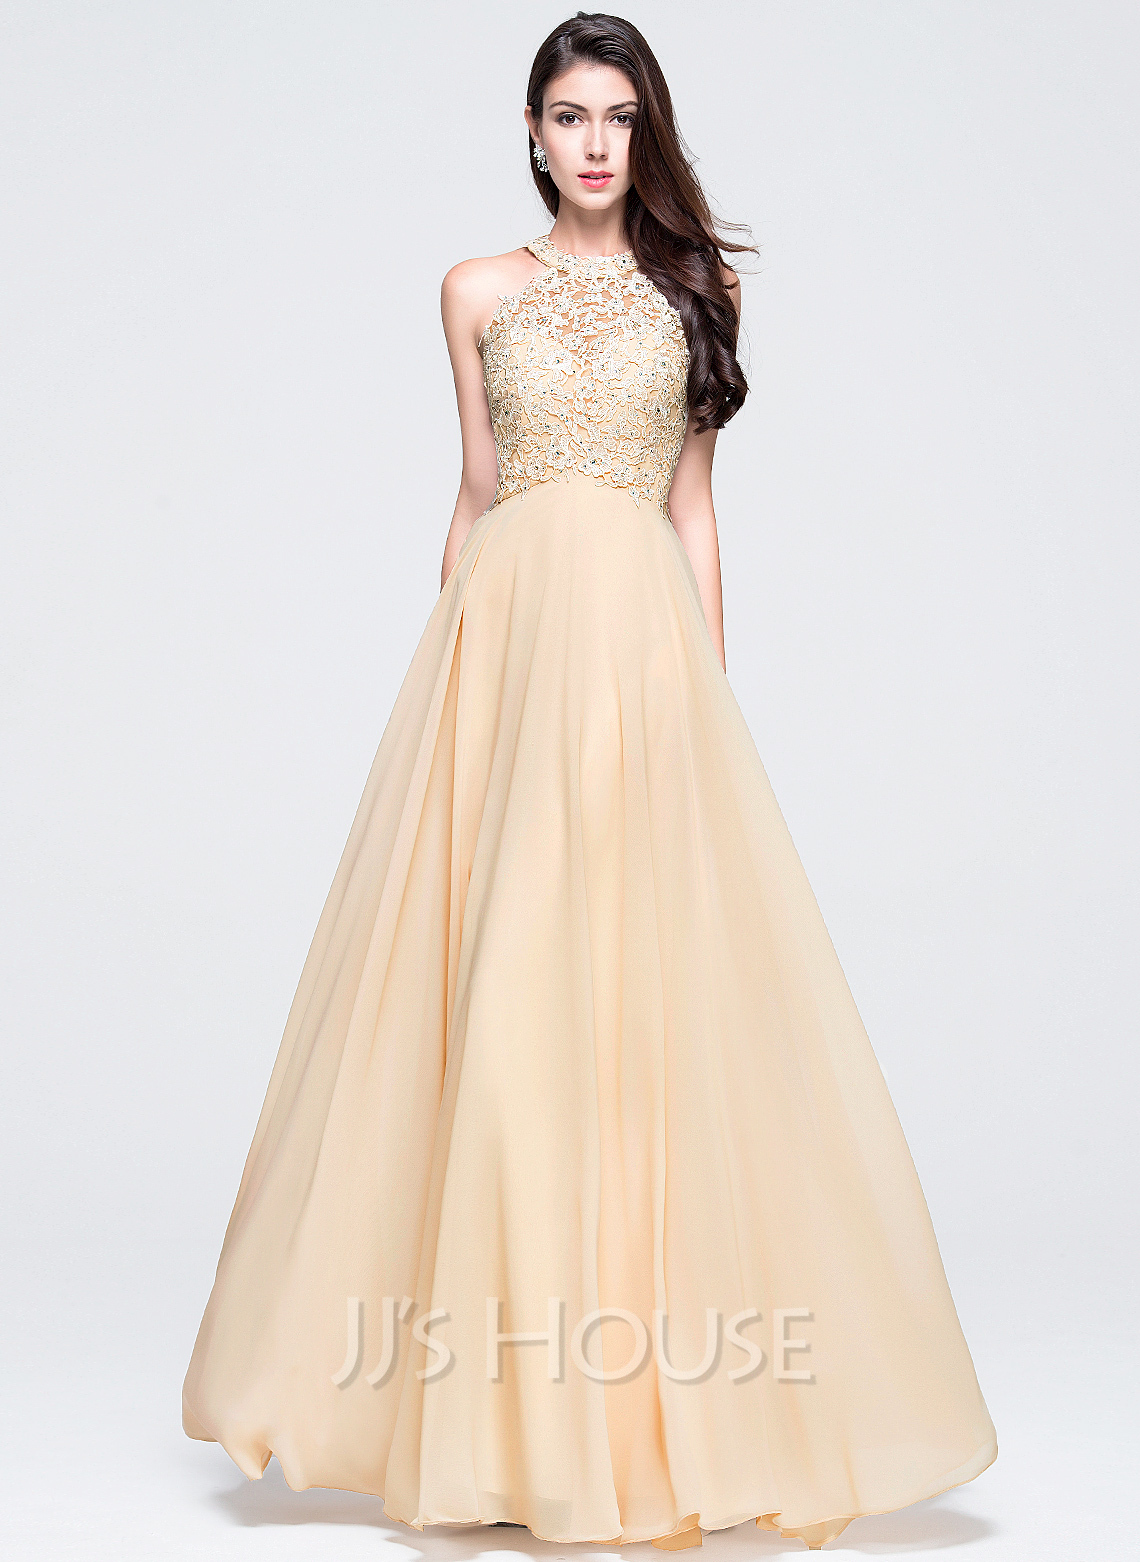 A Line Princess Scoop Neck Floor Length Chiffon Prom Dress